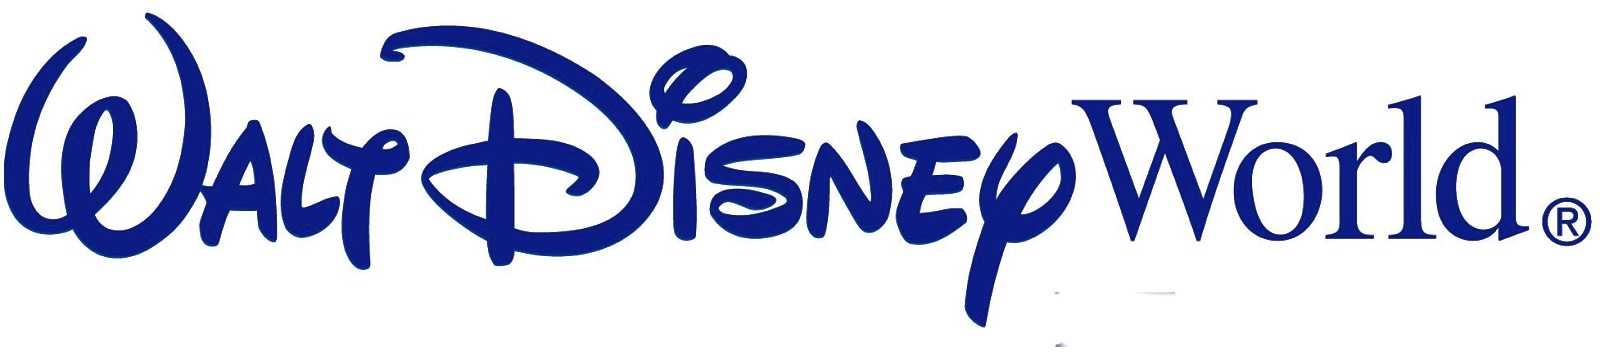 Walt Disney World promo codes